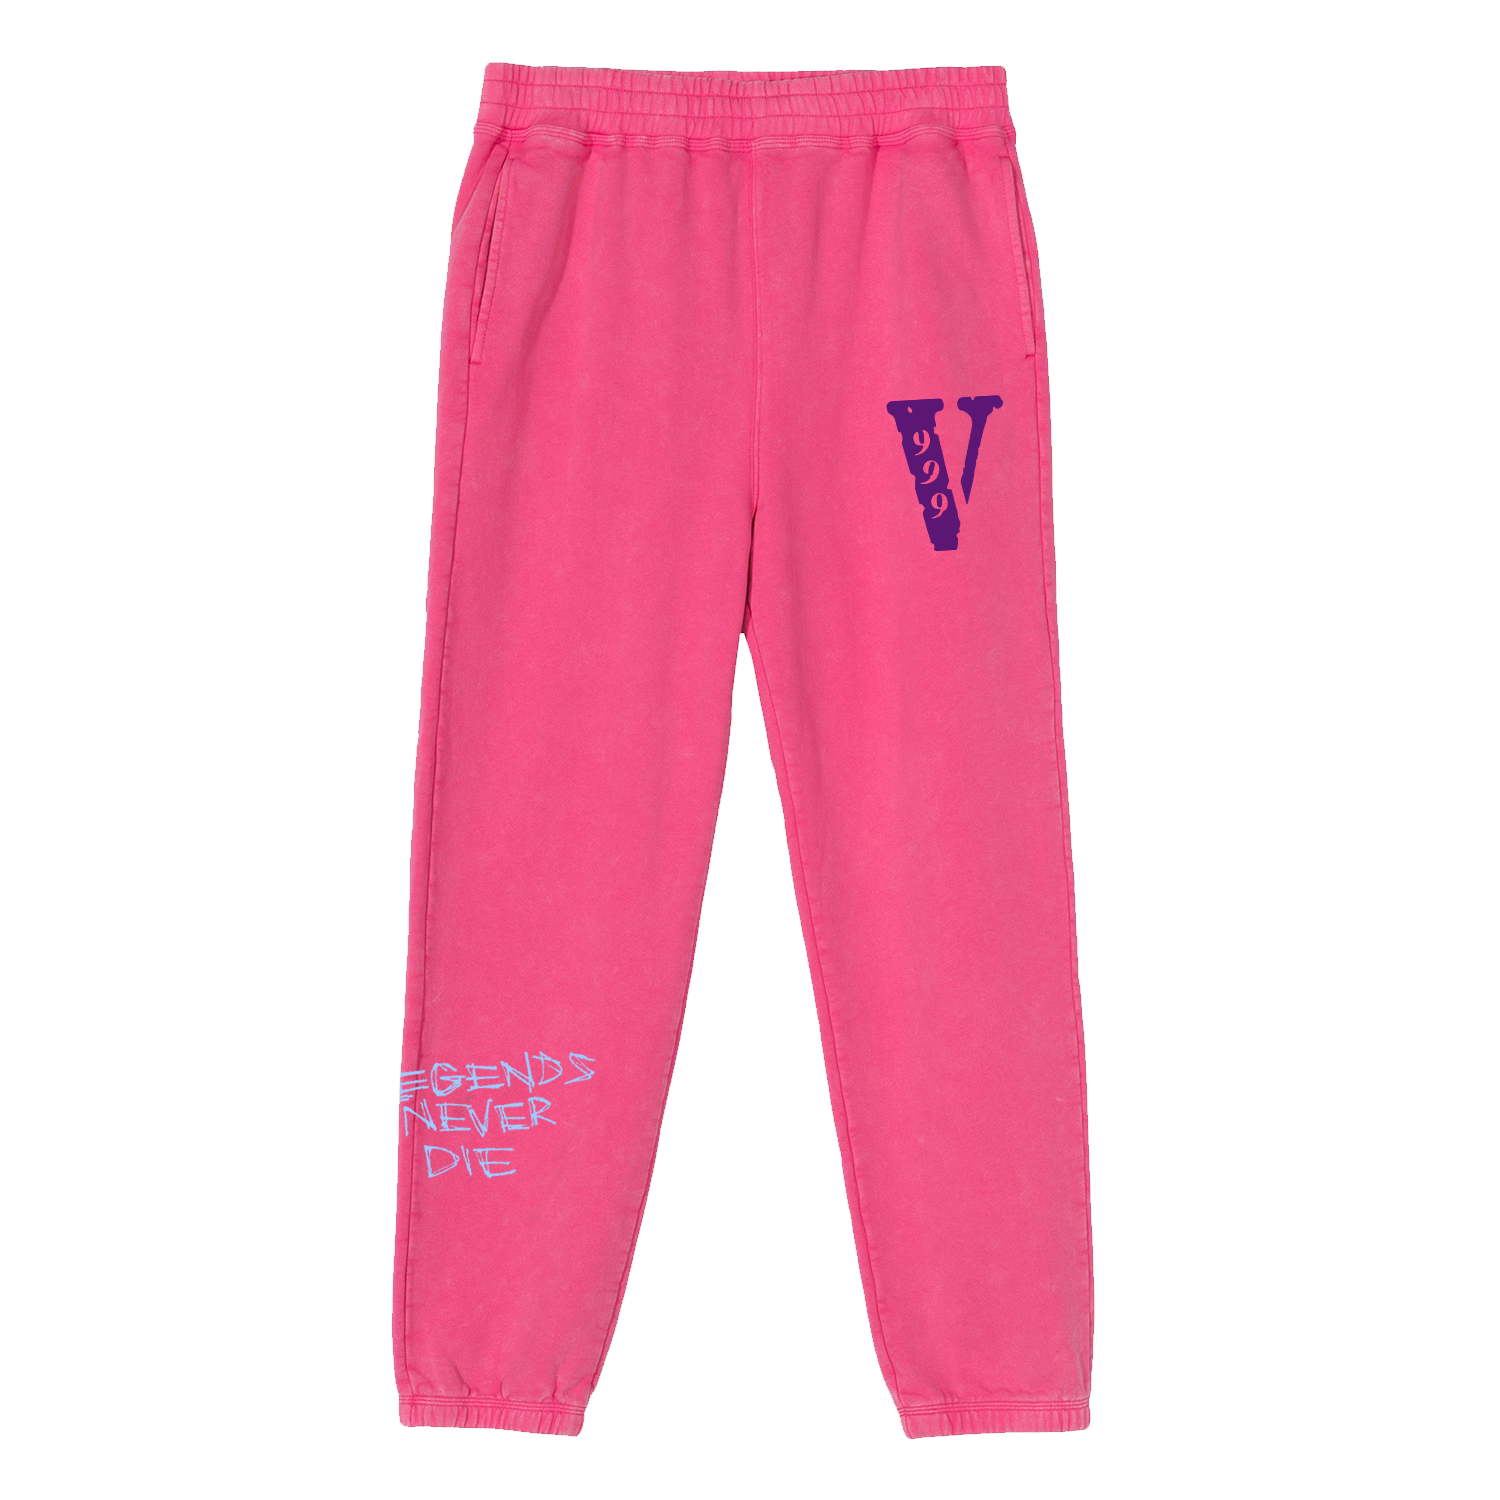 Juice WRLD X VLONE Sweatpants in Pink - JuiceWrld